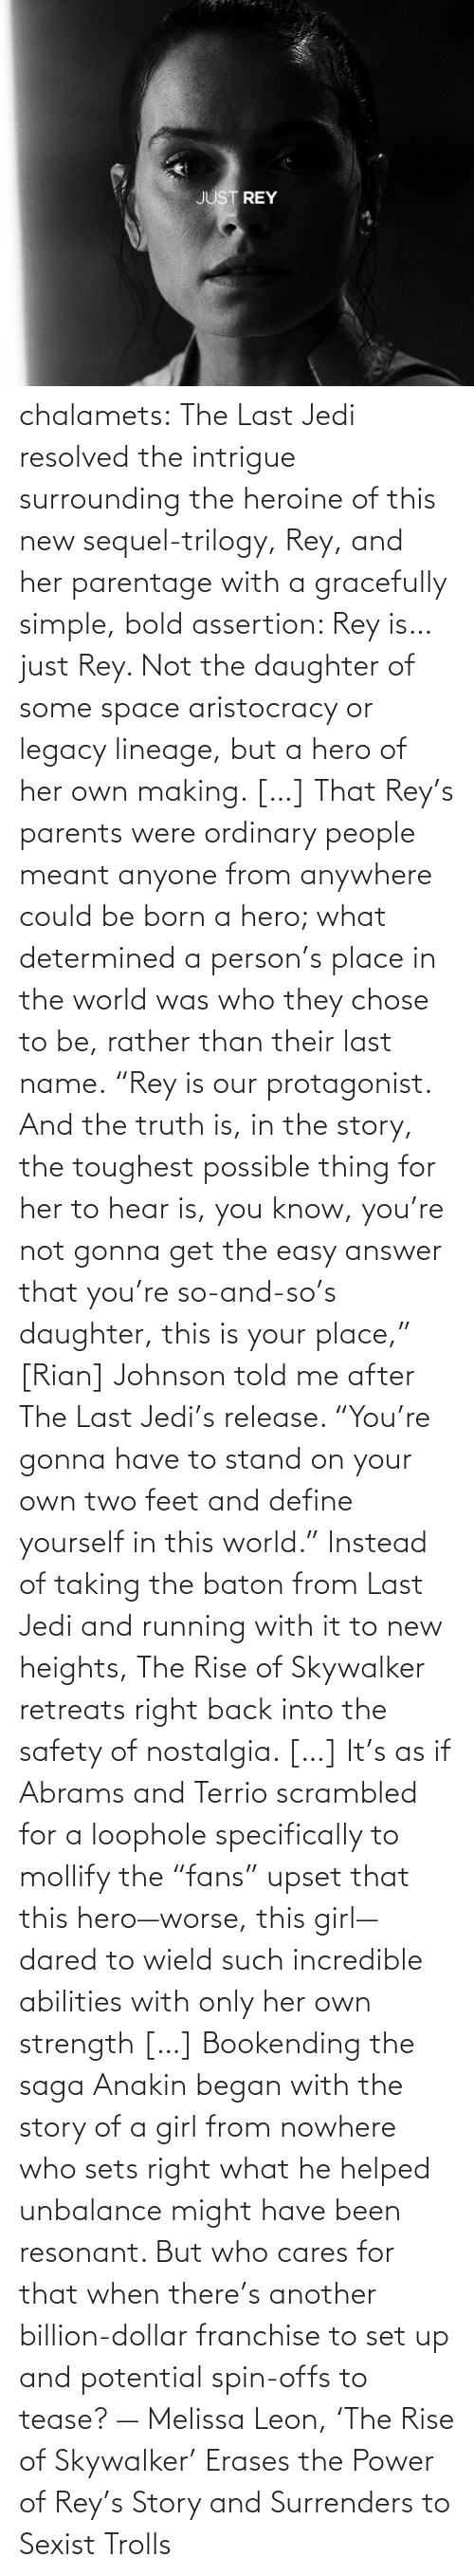 "your own: chalamets:  The Last Jedi resolved the intrigue surrounding the heroine of this new sequel-trilogy, Rey, and her parentage with a gracefully simple, bold assertion: Rey is… just Rey. Not the daughter of some space aristocracy or legacy lineage, but a hero of her own making. […] That Rey's parents were ordinary people meant anyone from anywhere could be born a hero; what determined a person's place in the world was who they chose to be, rather than their last name. ""Rey is our protagonist. And the truth is, in the story, the toughest possible thing for her to hear is, you know, you're not gonna get the easy answer that you're so-and-so's daughter, this is your place,"" [Rian] Johnson told me after The Last Jedi's release. ""You're gonna have to stand on your own two feet and define yourself in this world."" Instead of taking the baton from Last Jedi and running with it to new heights, The Rise of Skywalker retreats right back into the safety of nostalgia. […] It's as if Abrams and Terrio scrambled for a loophole specifically to mollify the ""fans"" upset that this hero—worse, this girl—dared to wield such incredible abilities with only her own strength […] Bookending the saga Anakin began with the story of a girl from nowhere who sets right what he helped unbalance might have been resonant. But who cares for that when there's another billion-dollar franchise to set up and potential spin-offs to tease? — Melissa Leon, 'The Rise of Skywalker' Erases the Power of Rey's Story and Surrenders to Sexist Trolls"